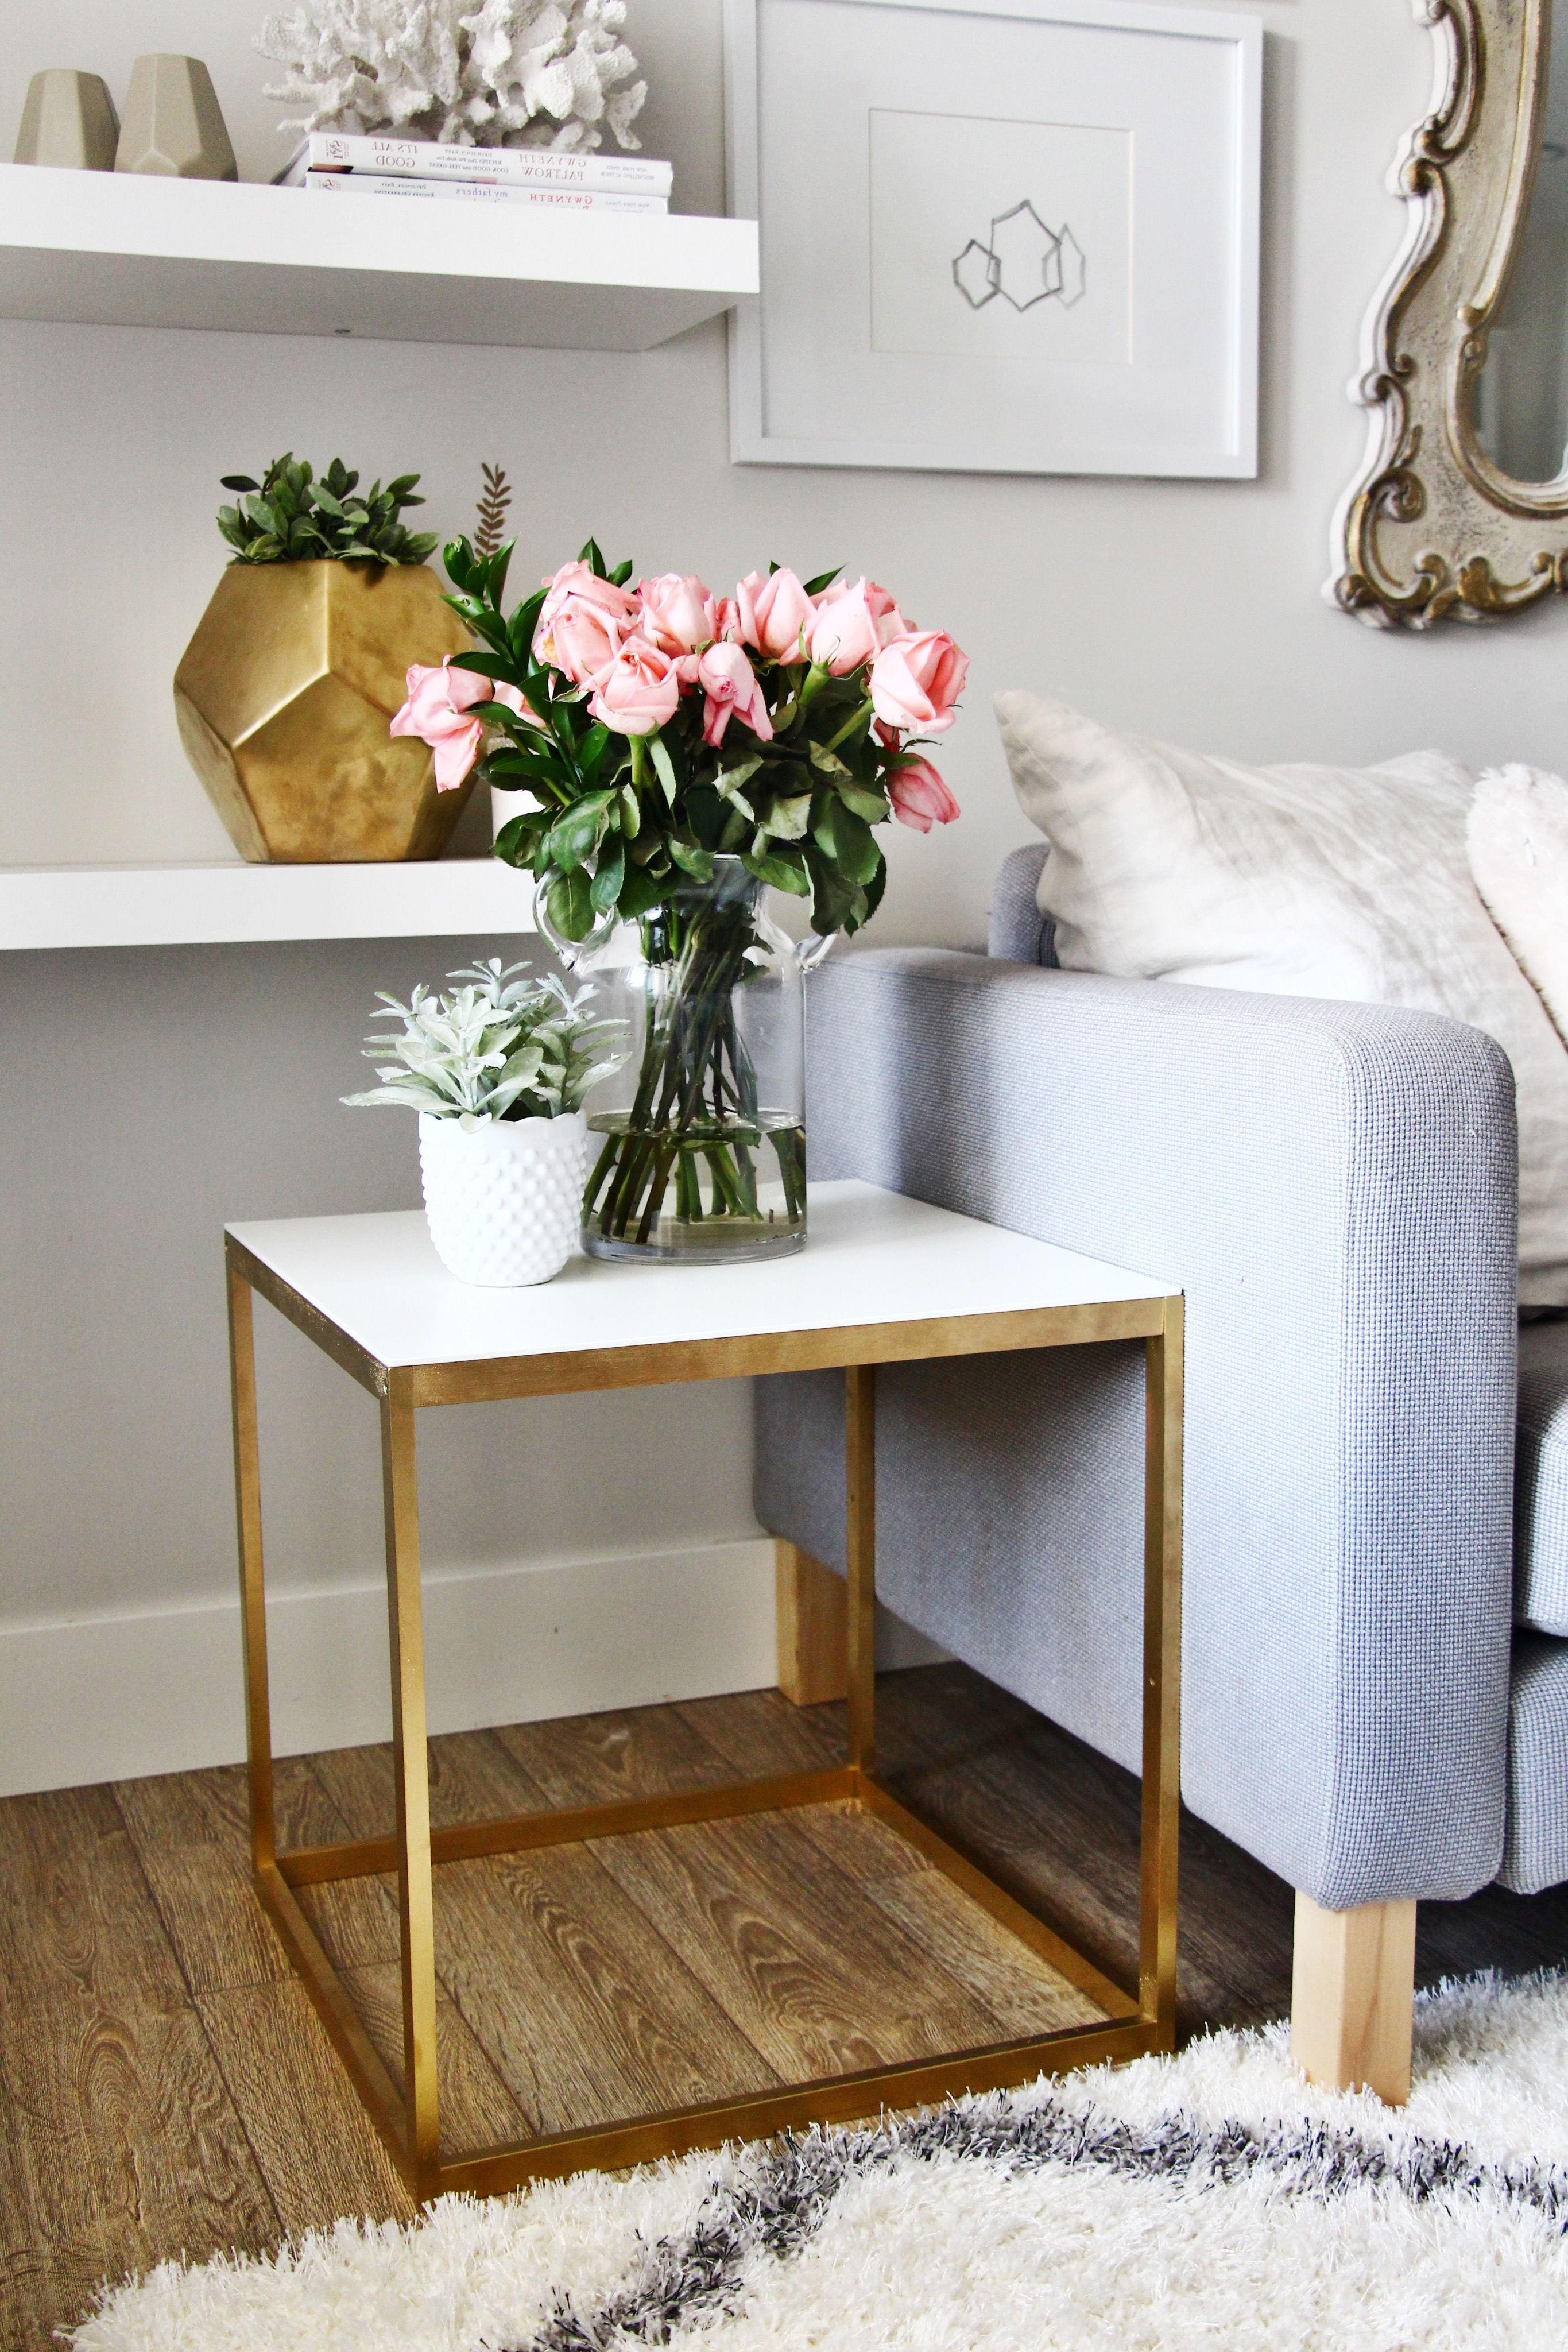 Pinterest Regarding Round White Wash Brass Painted Coffee Tables (Gallery 10 of 20)